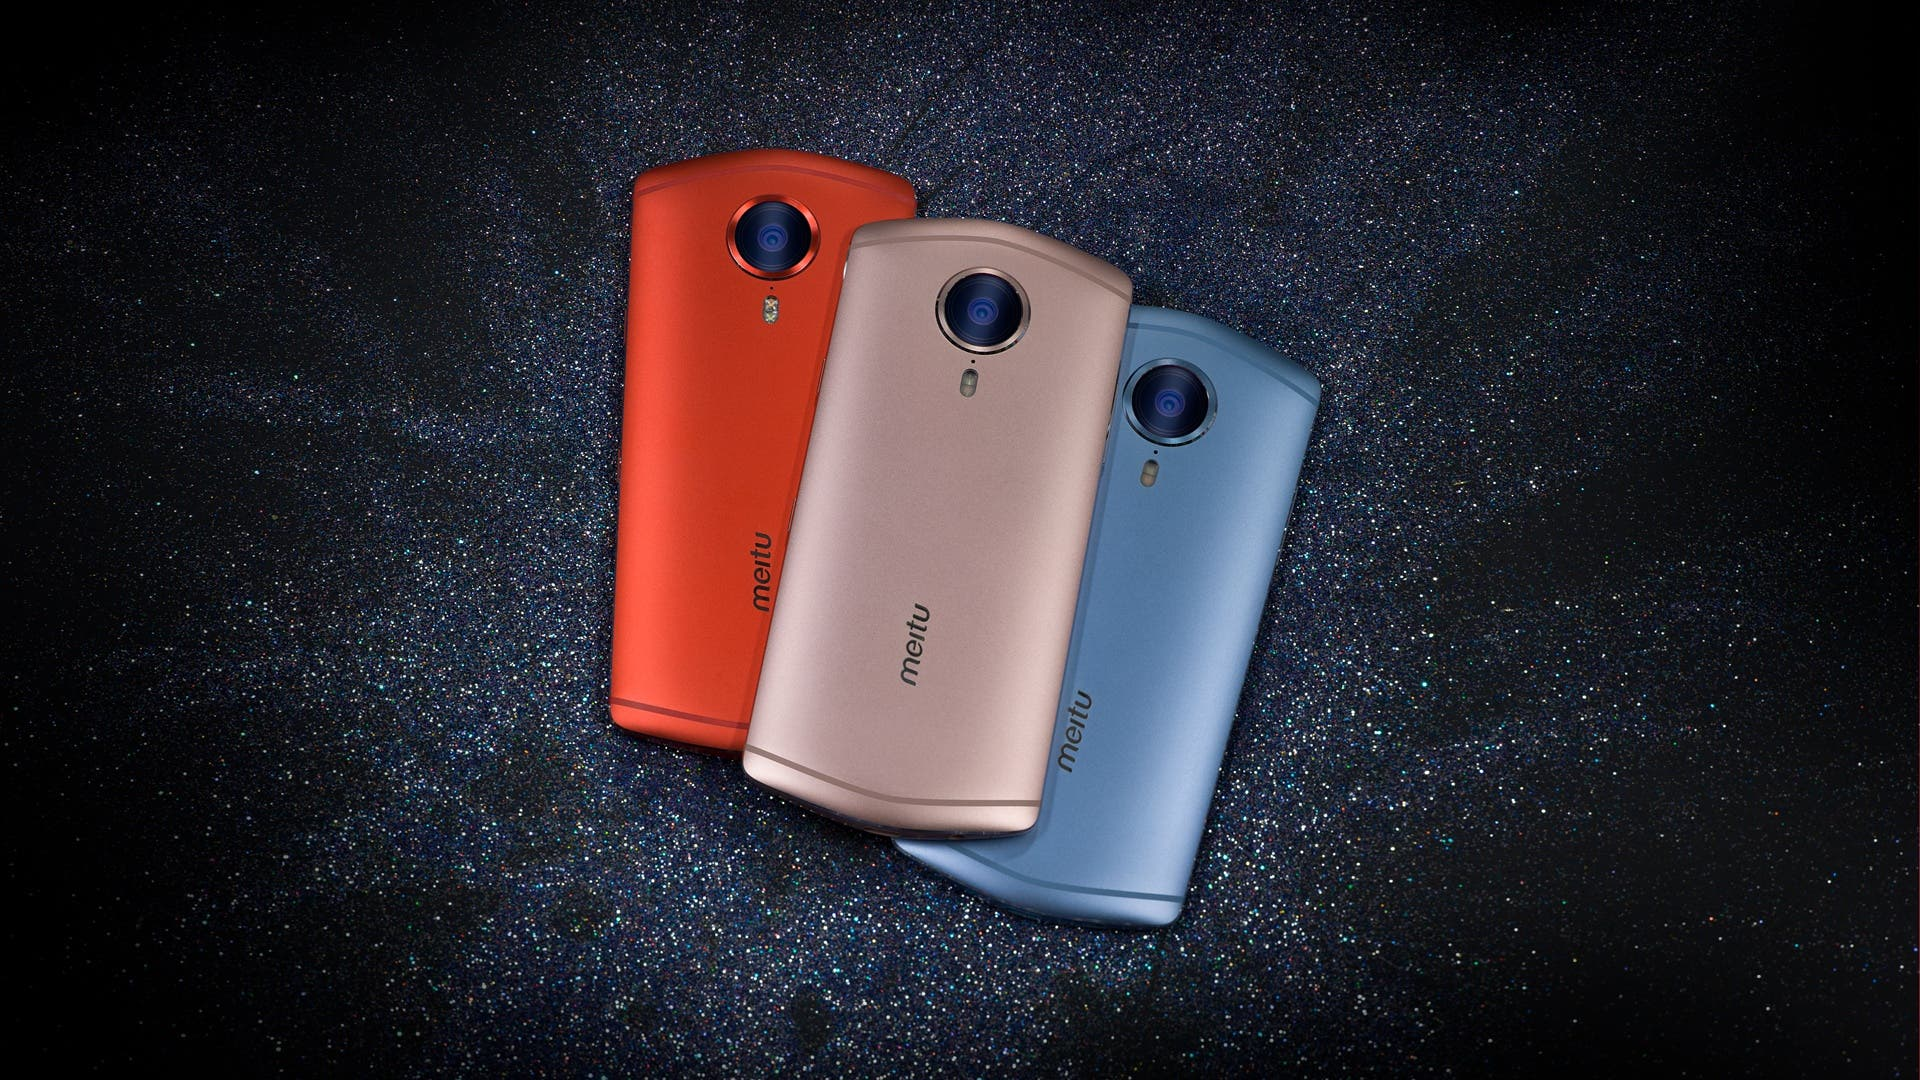 Meitu T8 Specifications